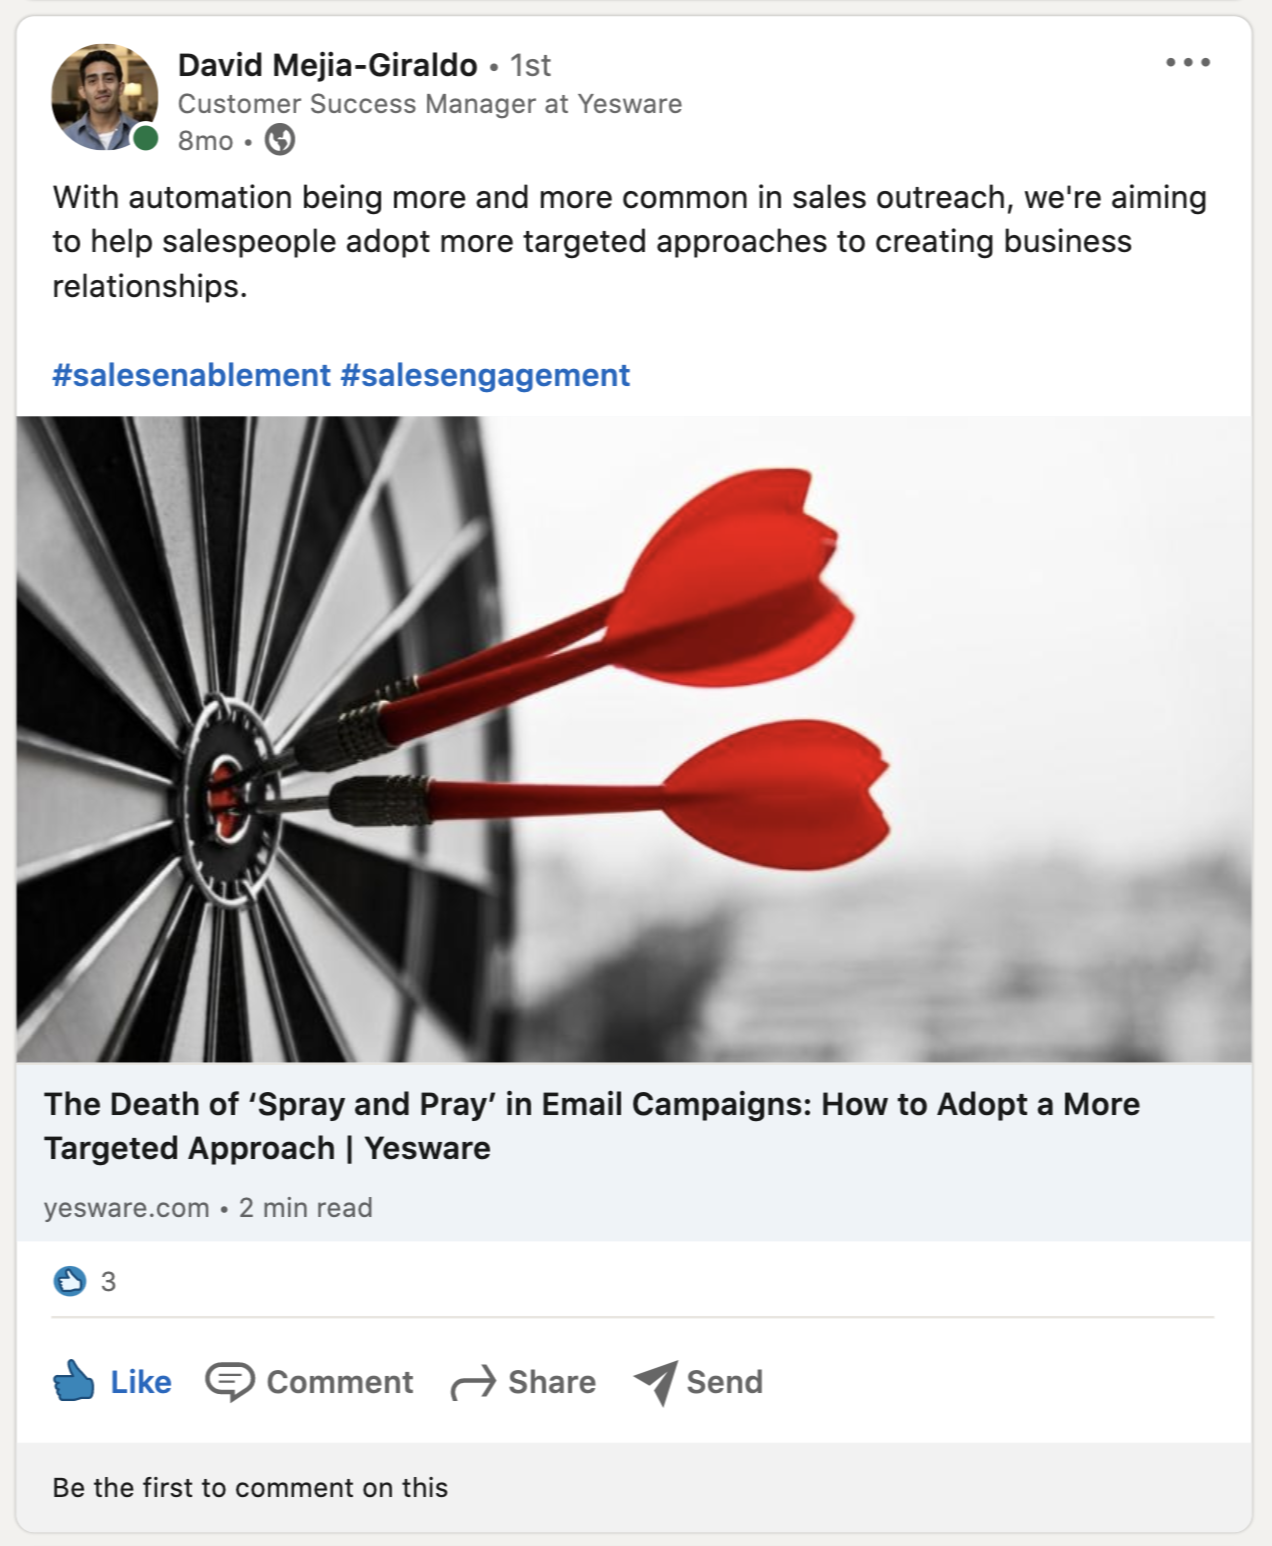 share relevant content on Linkedin